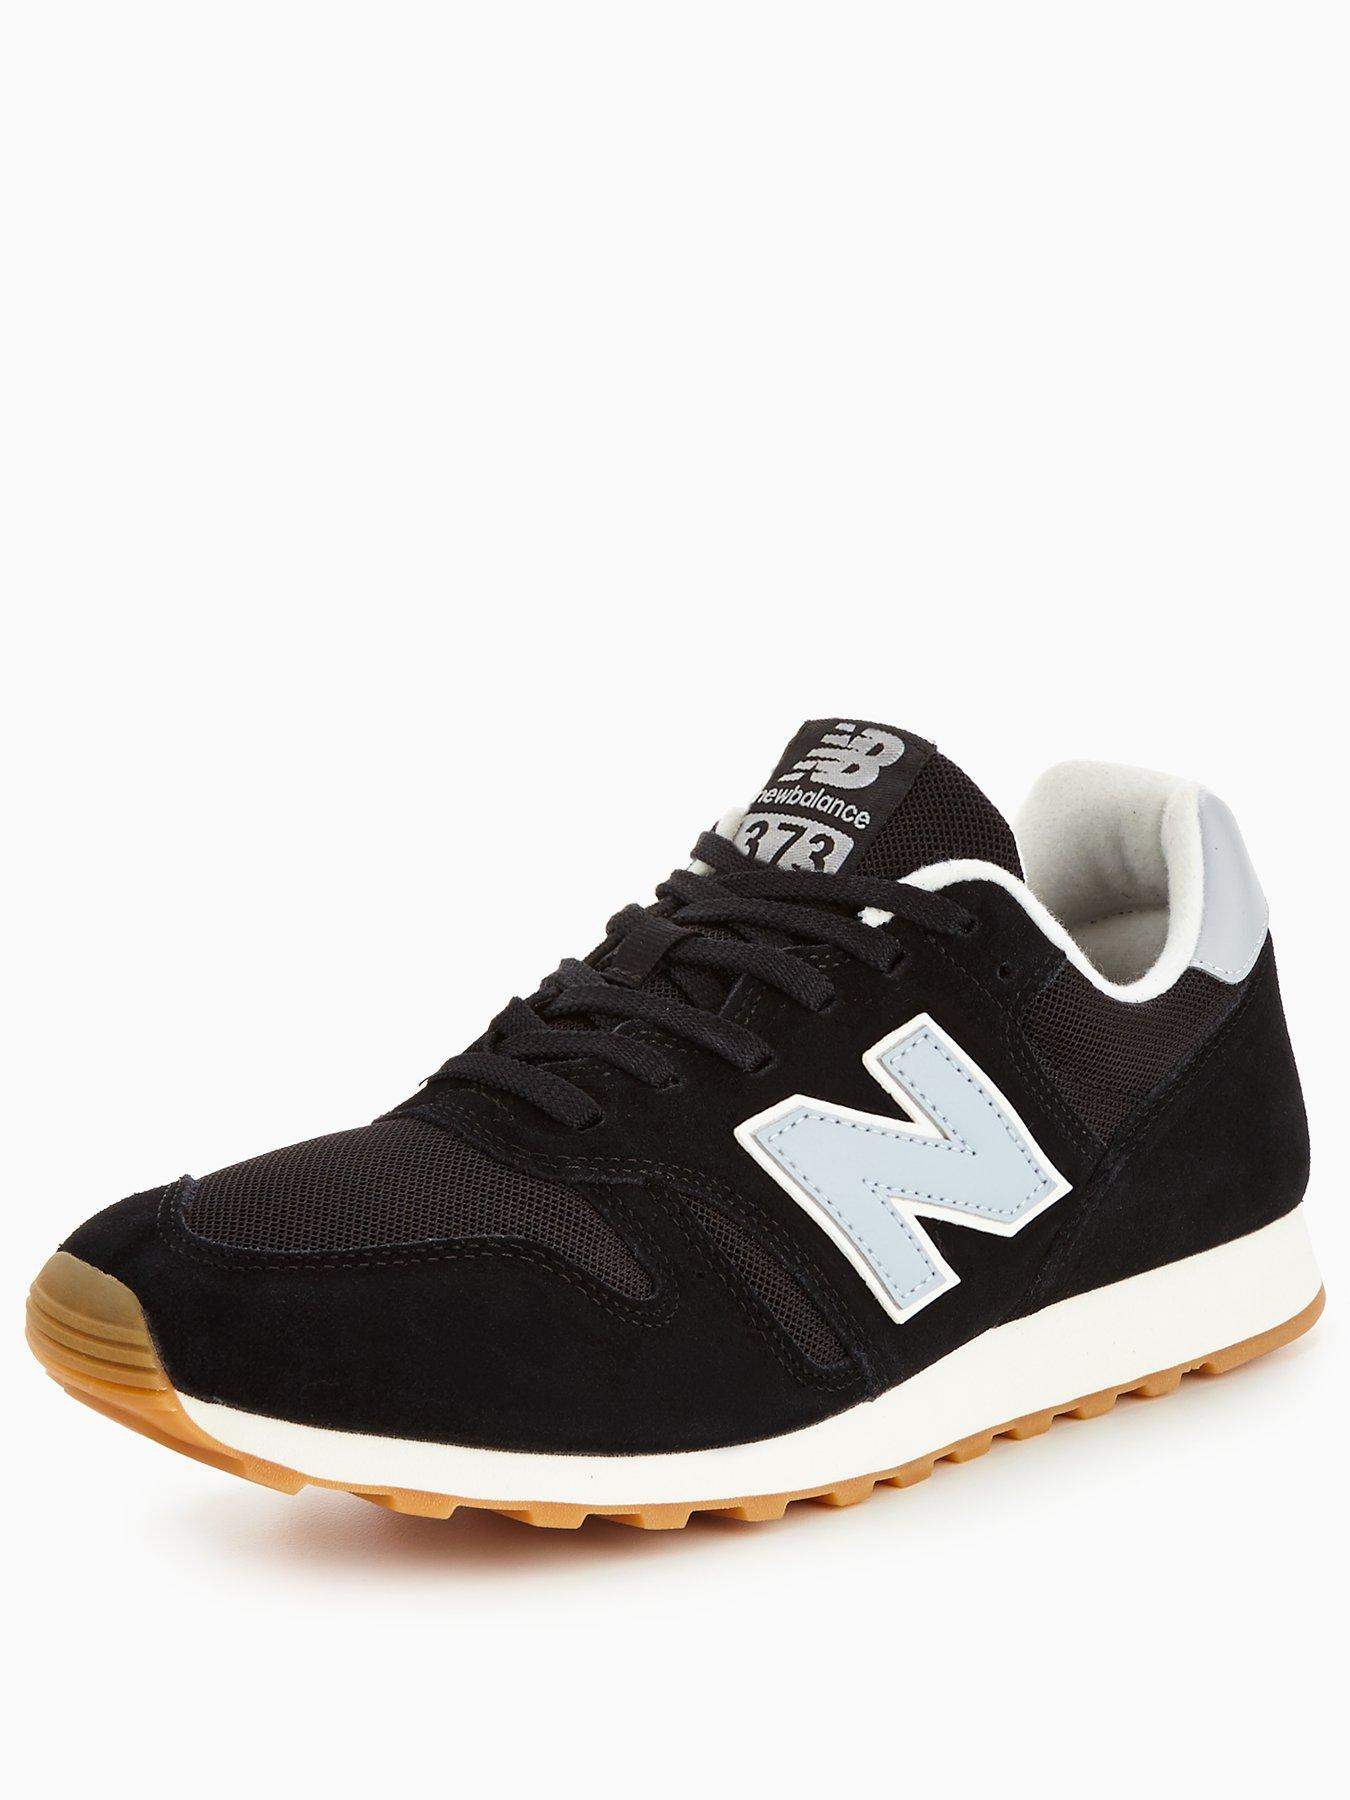 online retailer 7461f 9bf2d cheapest nike new balance 373 044db 8052a